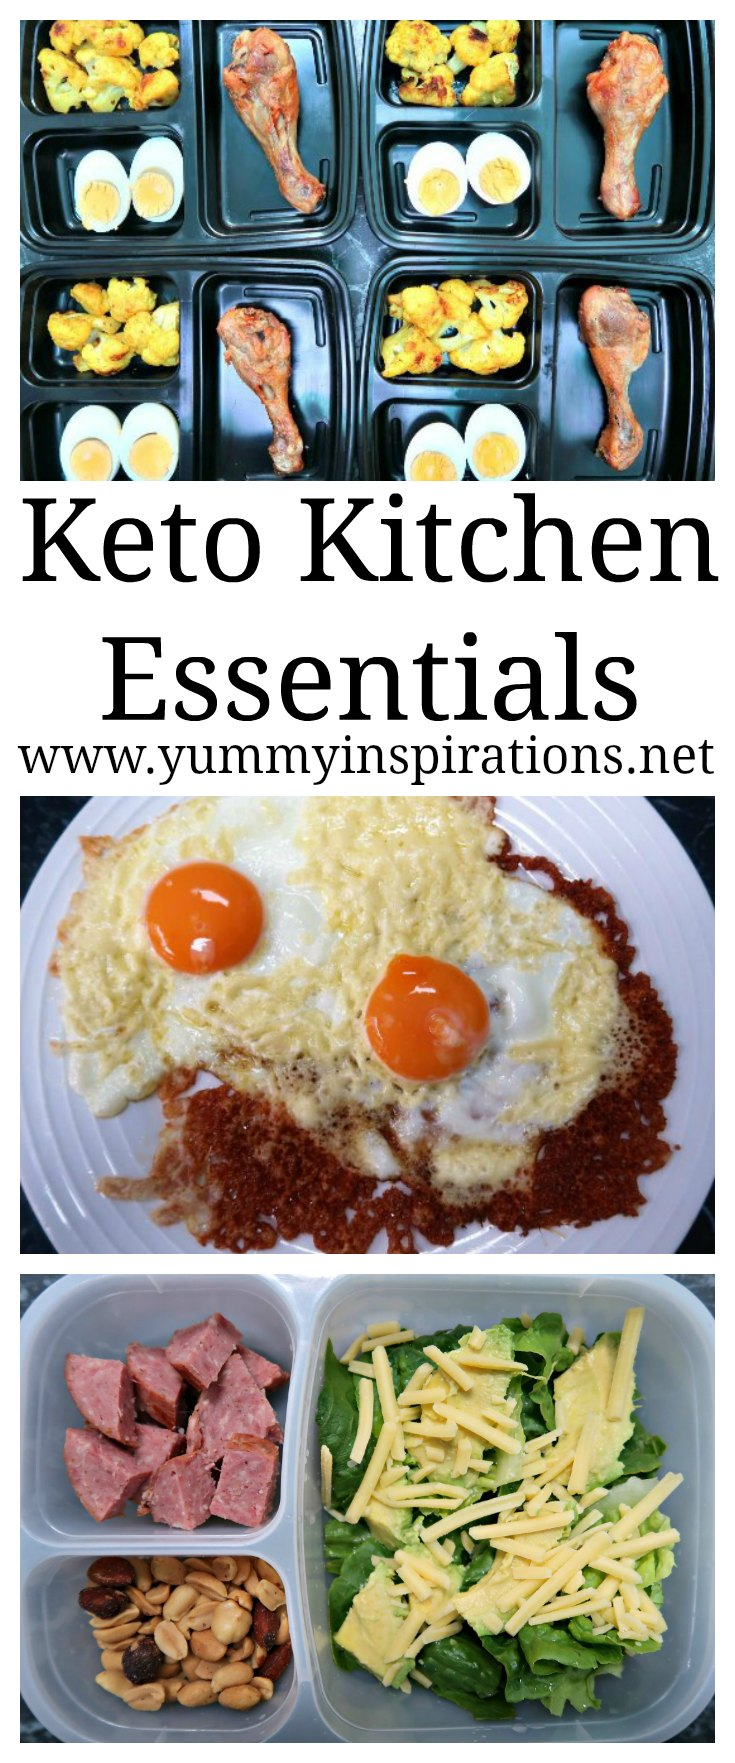 Keto Kitchen Essentials - Gadgets and Equipment to make it easy to follow the low carb ketogenic diet to help you save time and money!